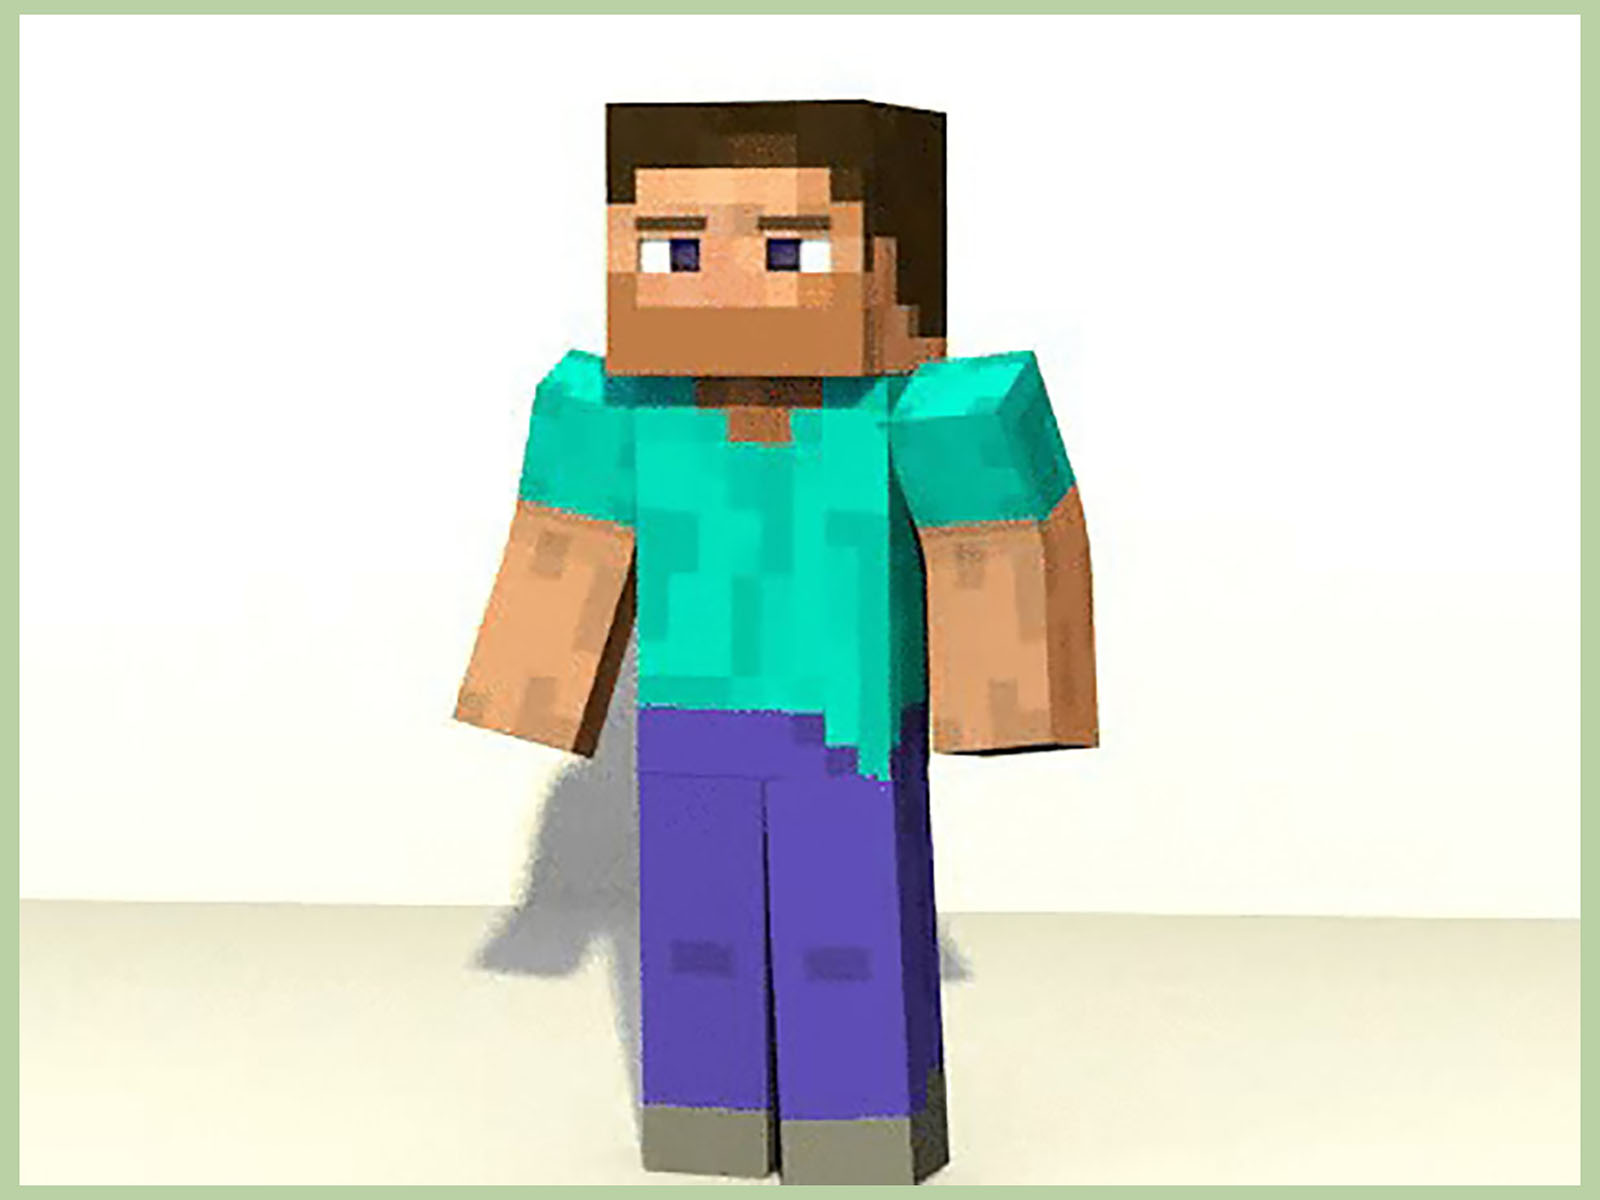 Moving clipart minecraft #3